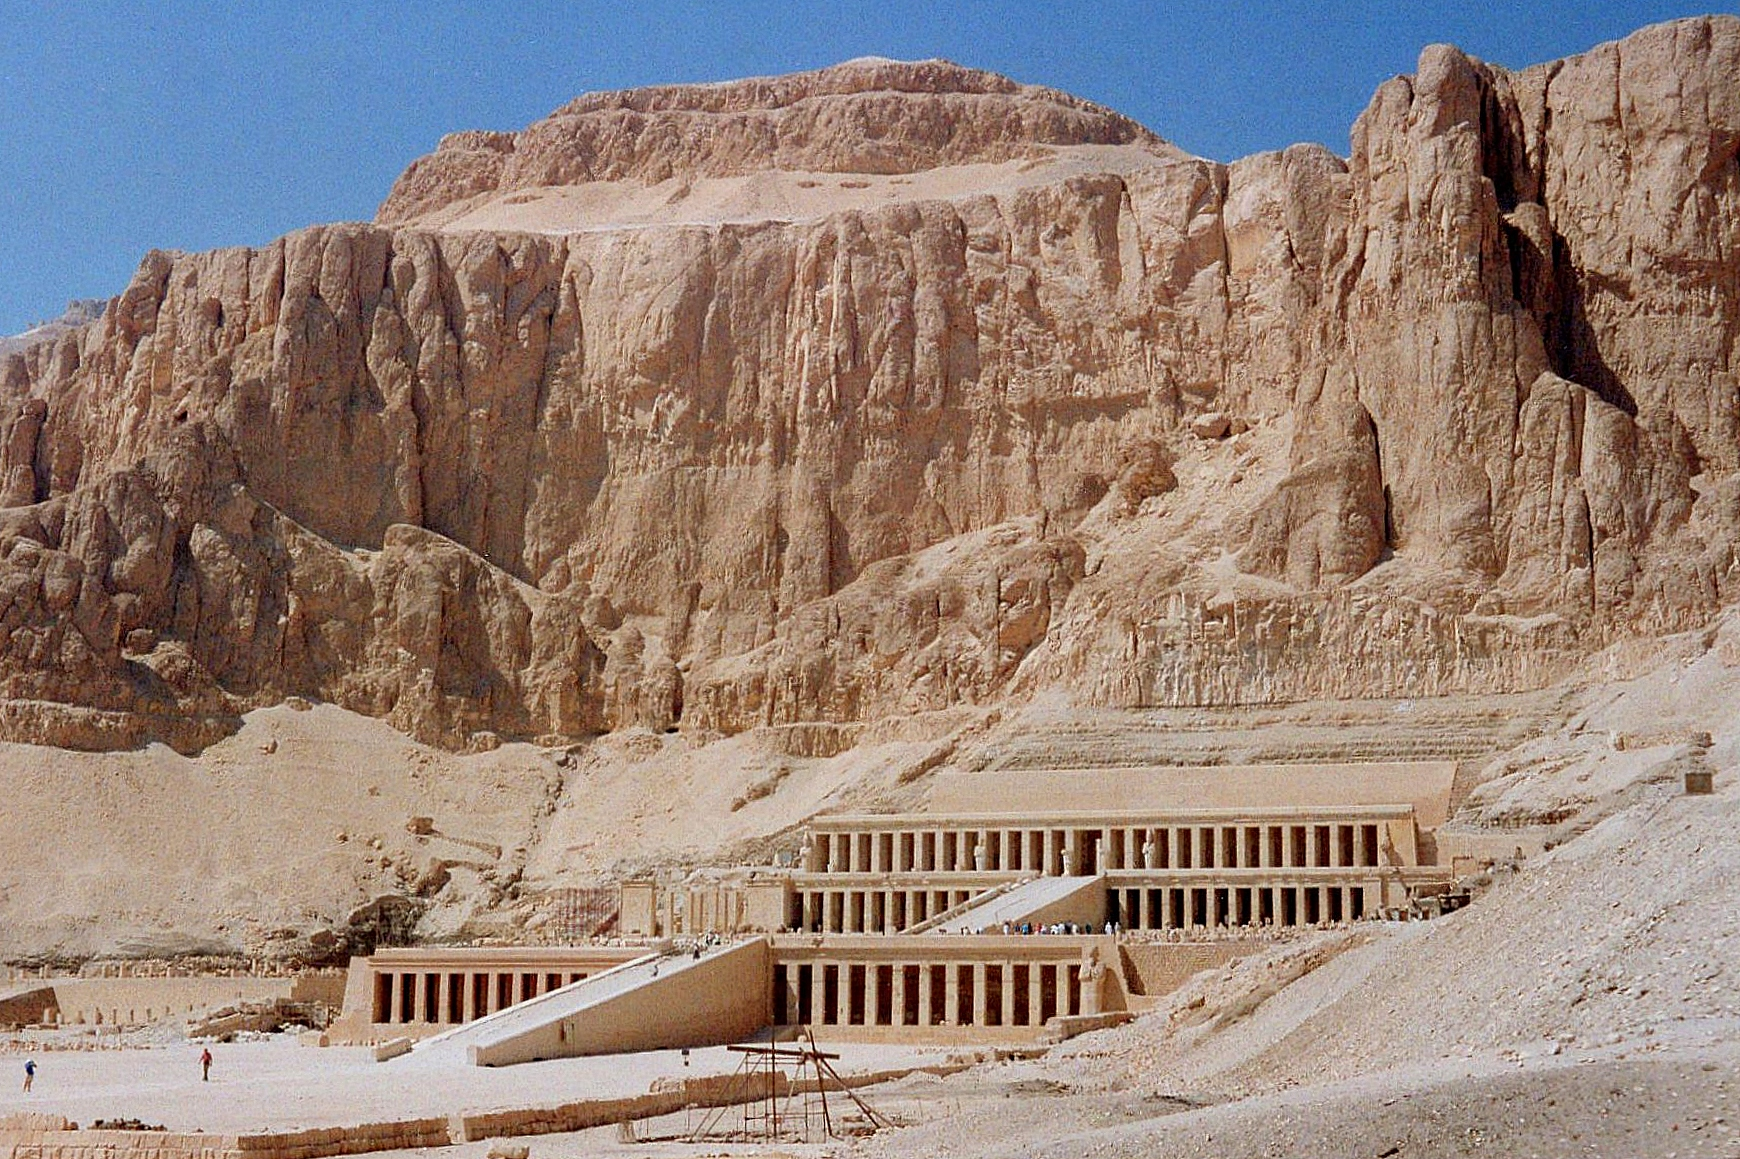 The top colonnade on Hatshepsut's funerary temple — which did not exist in 1970 — is complete in this 1989 photo